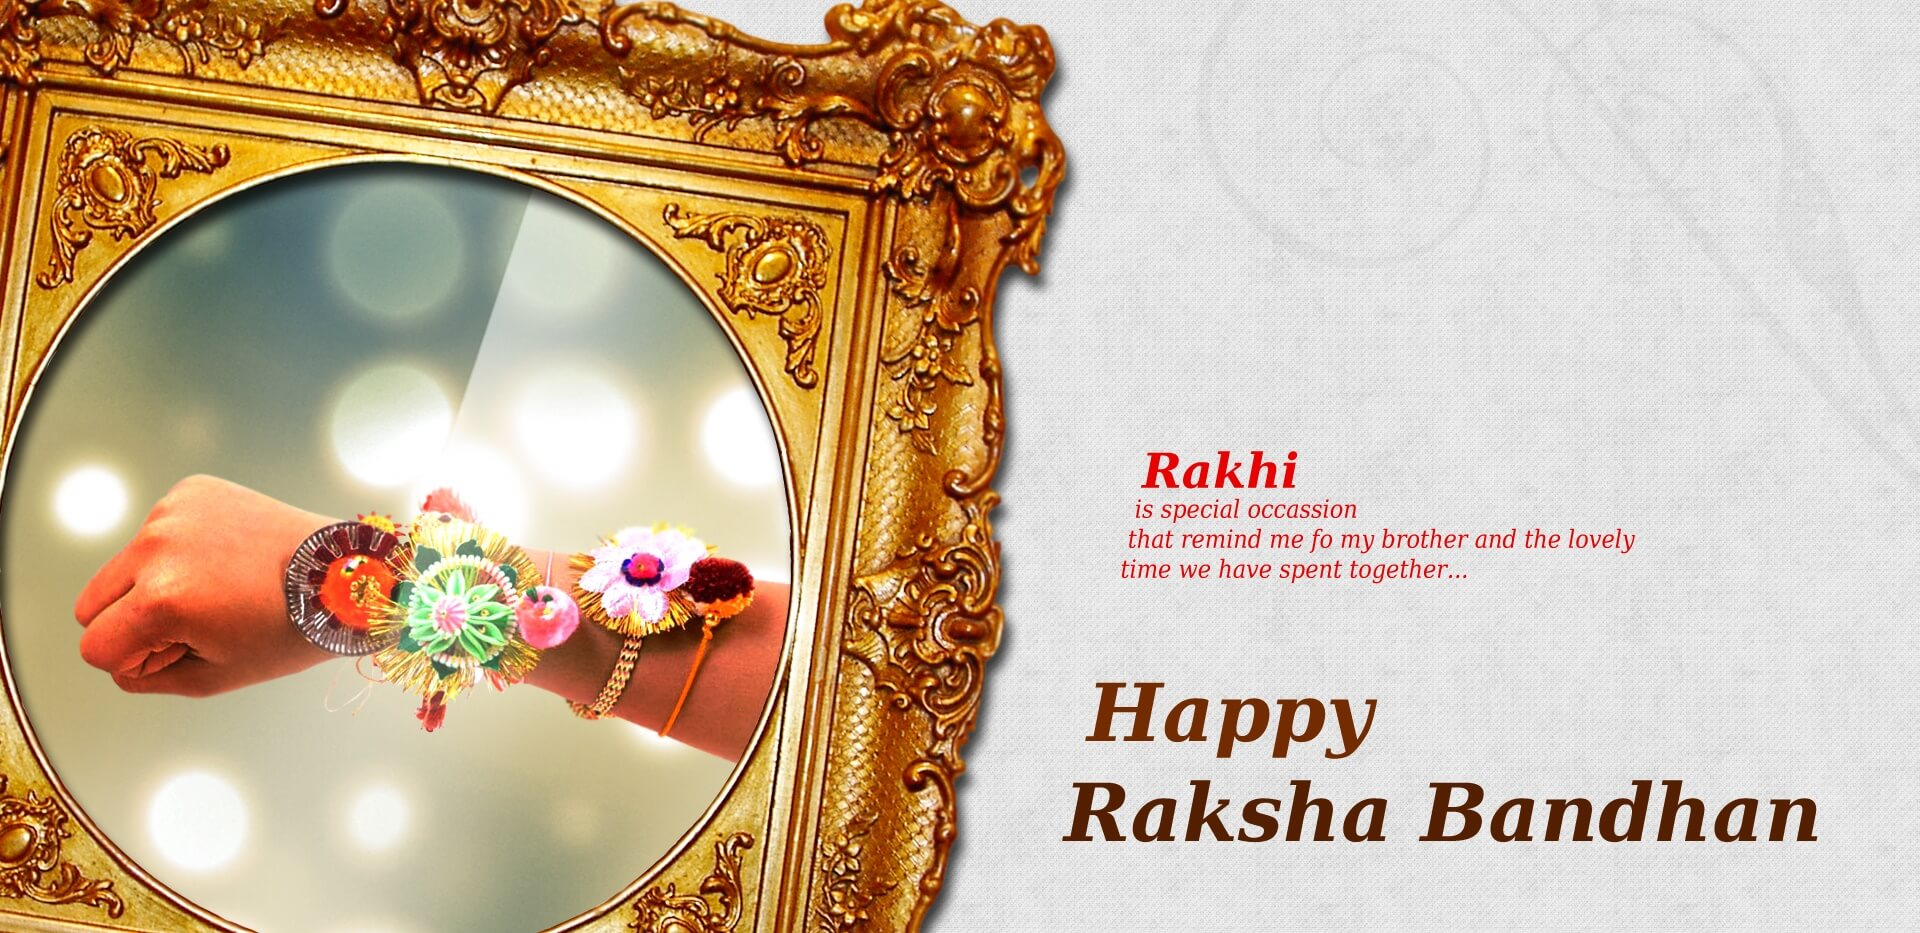 Happy Raksha Bandhan Messages quotes wishes wallpapers images